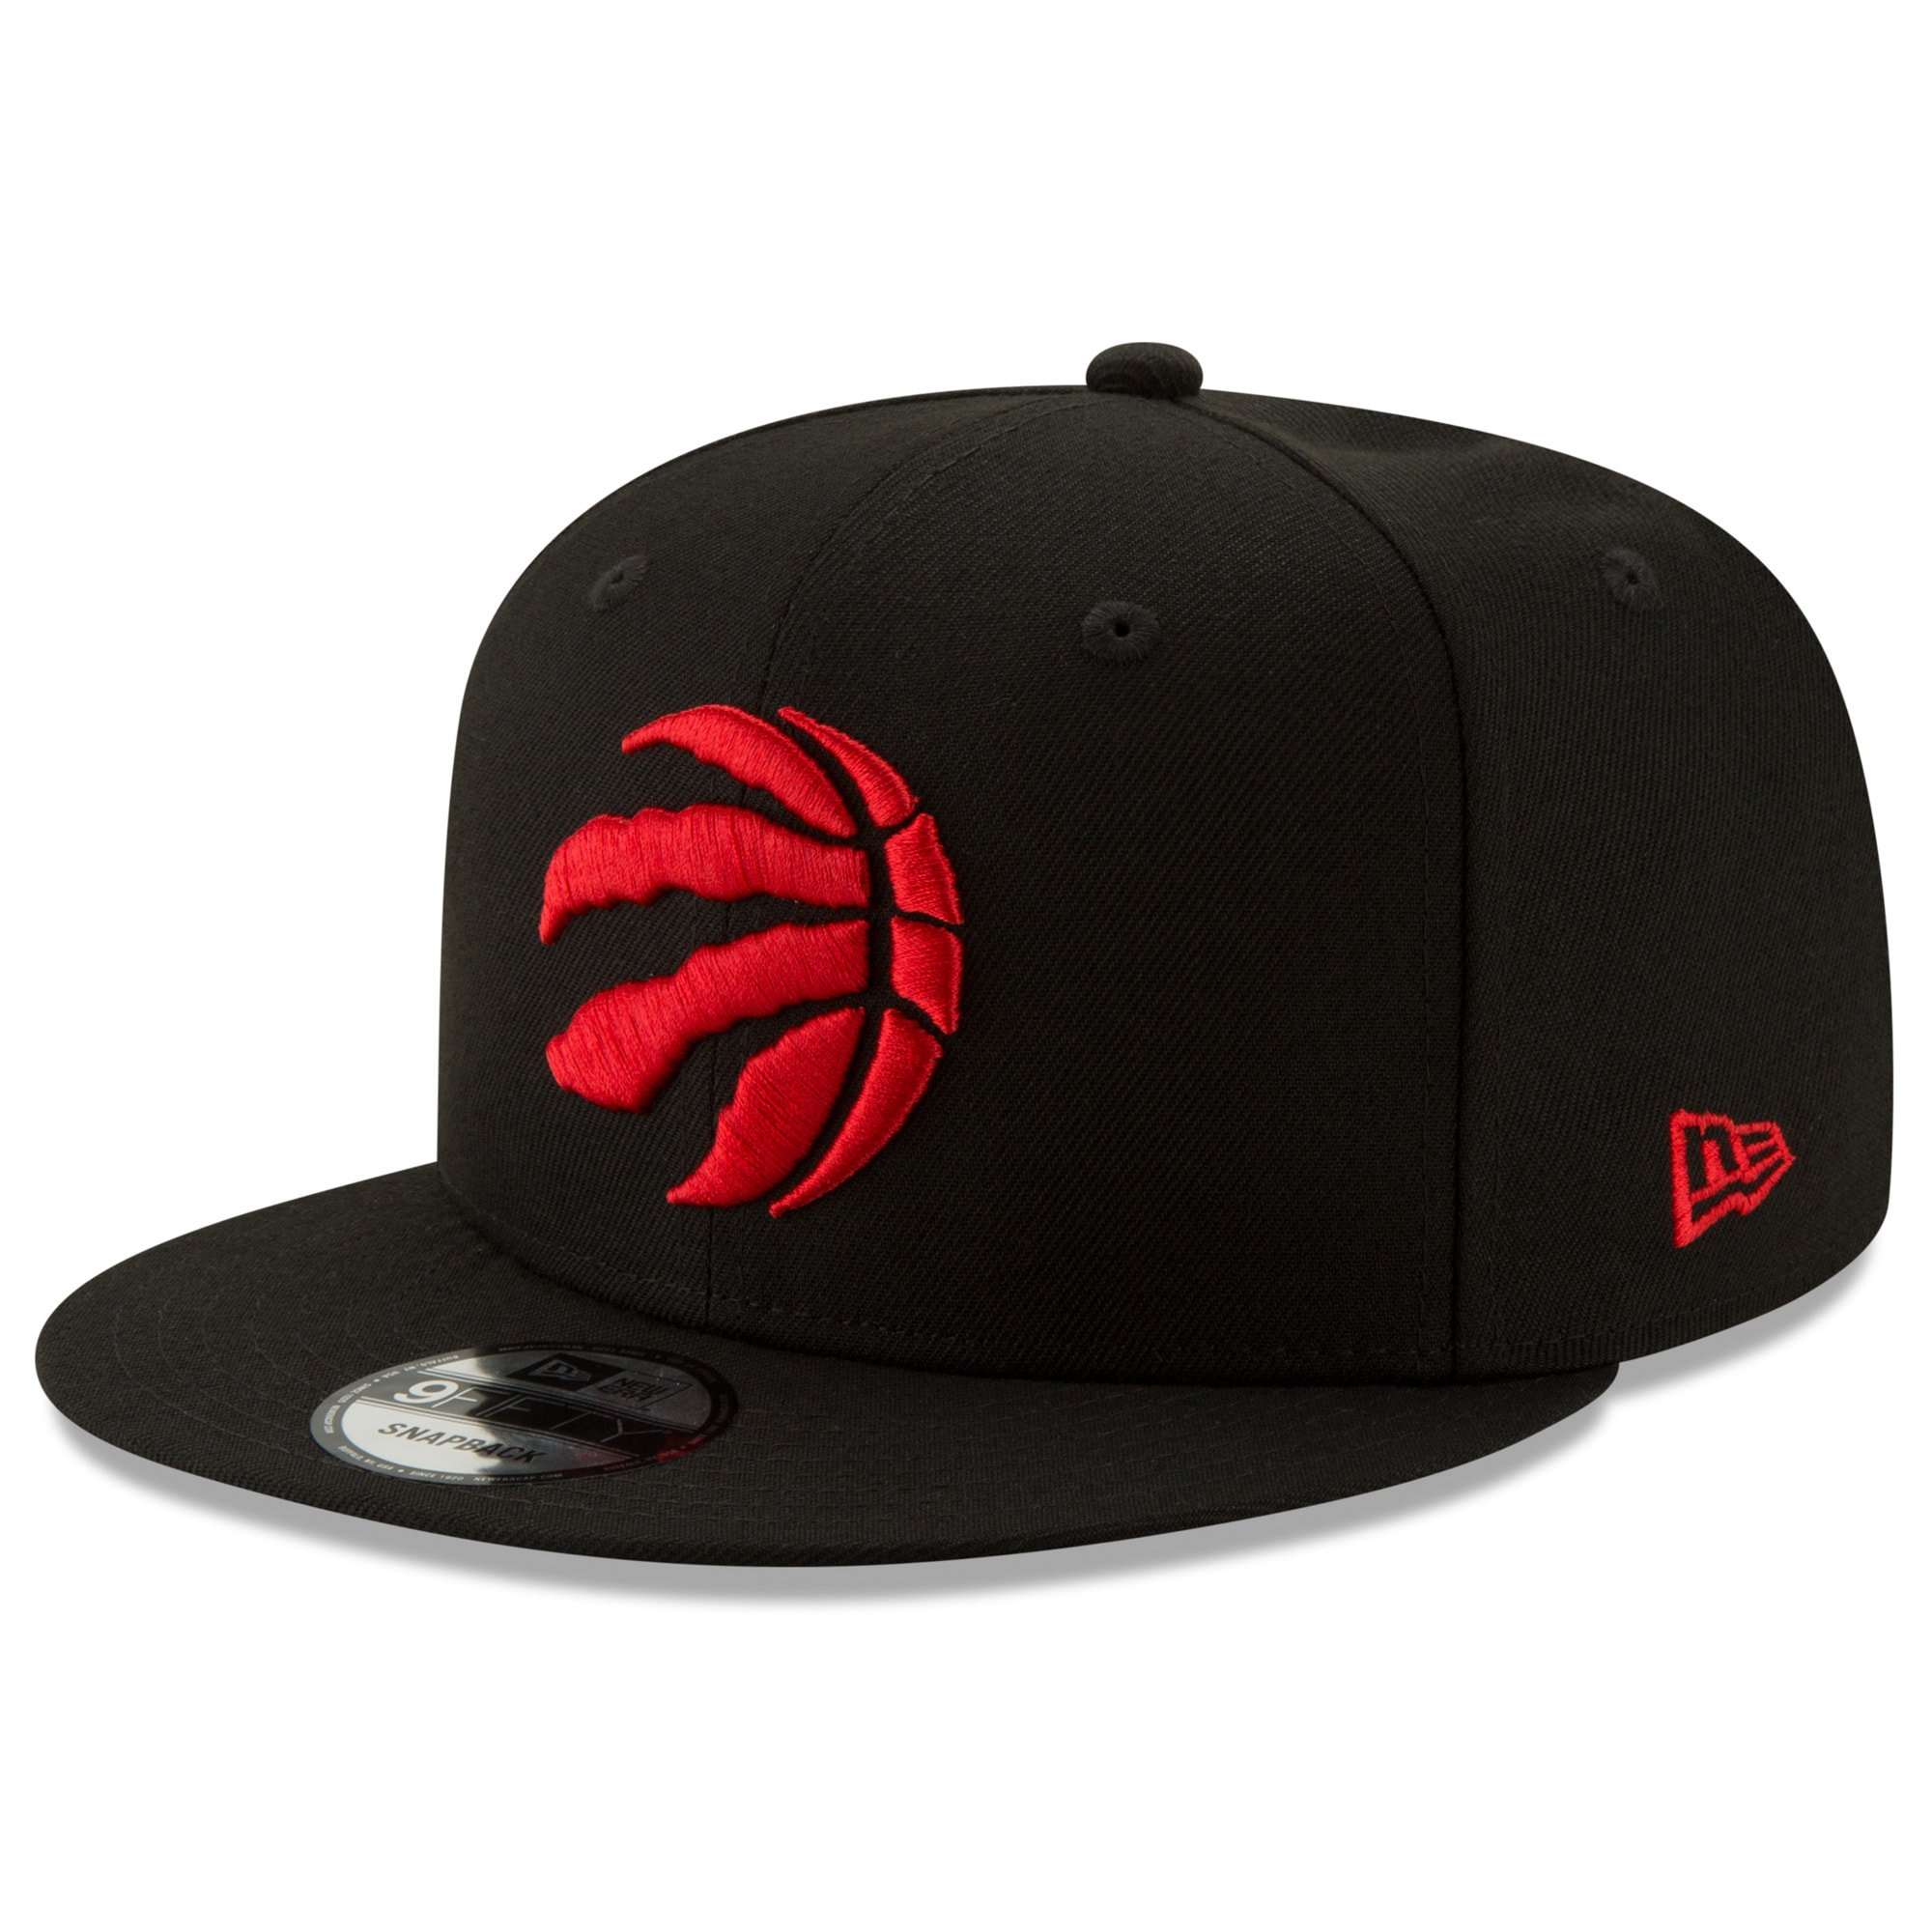 Toronto Raptors New Era Basic 9FIFTY Snapback Hat - Black